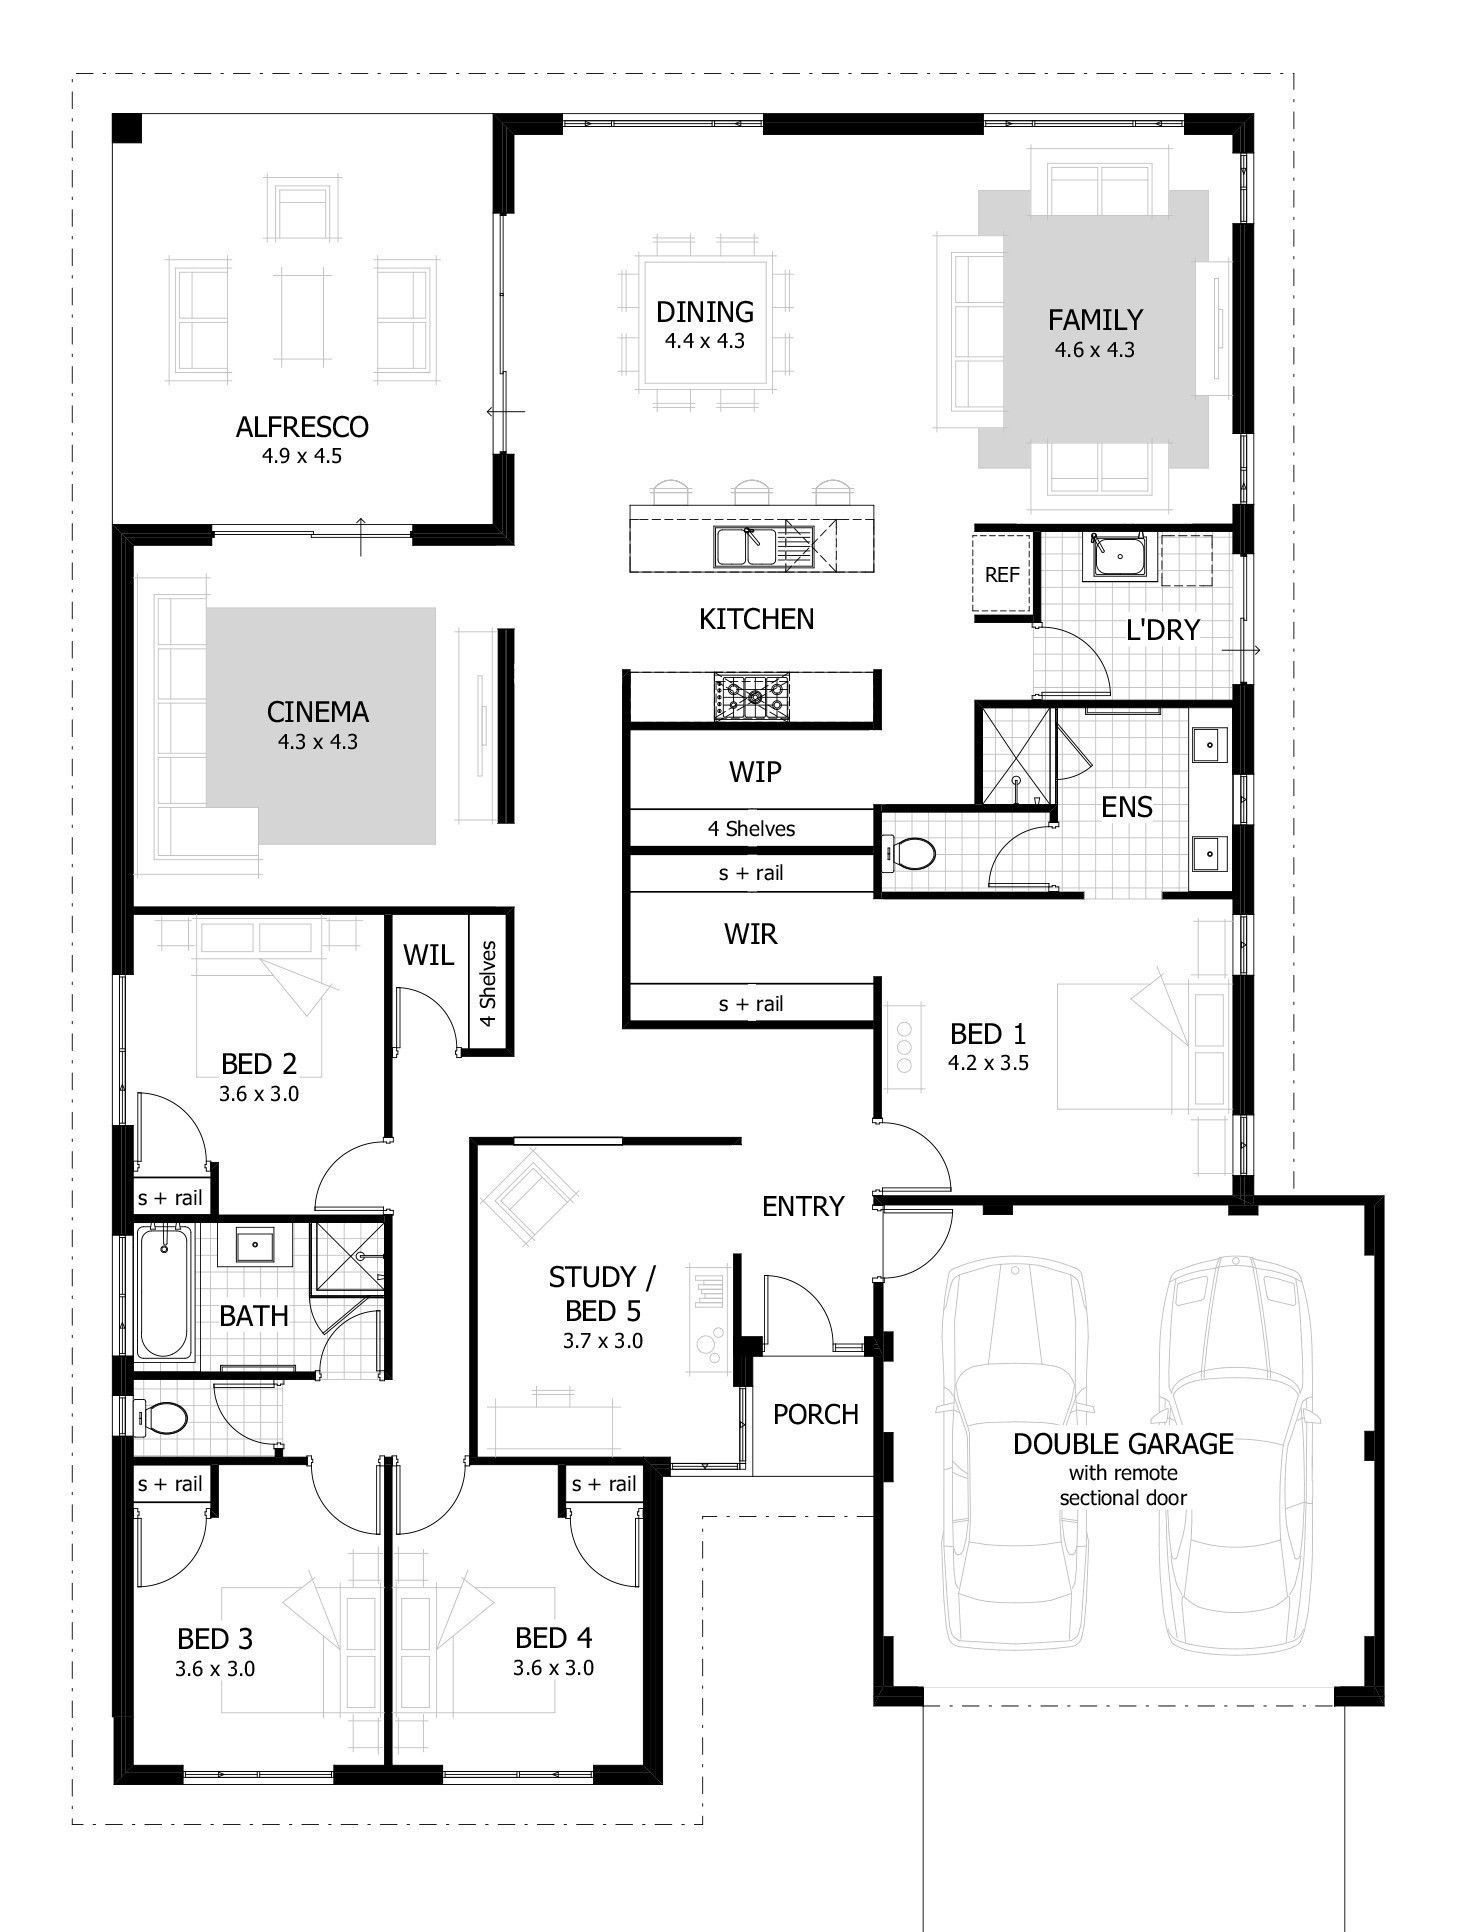 Software to Draw House Plans Free Luxury House Plans 3d S New Free Home Plan Design software Download